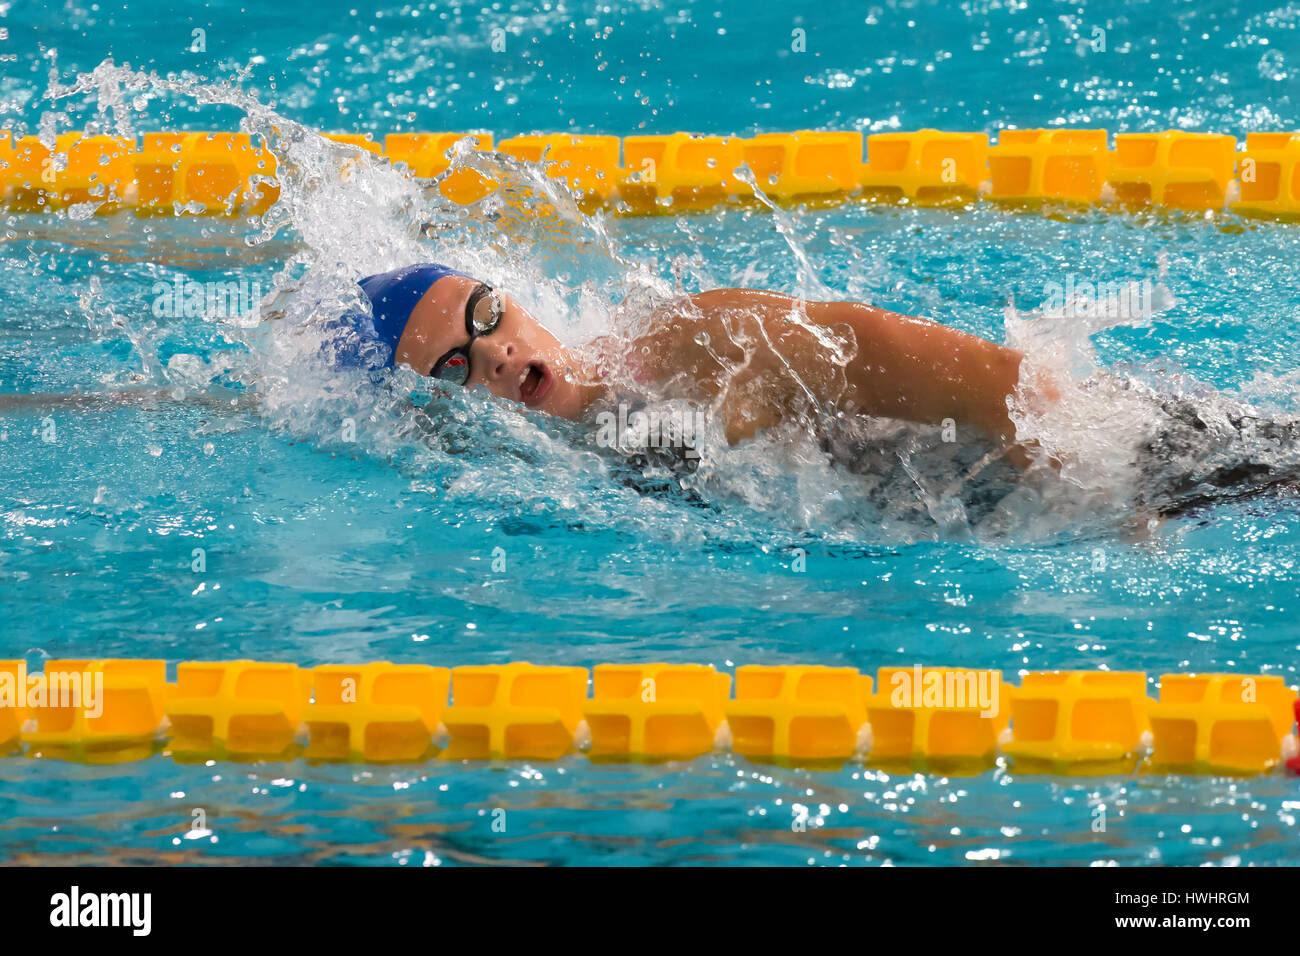 MILAN, ITALY - March 10, 2017: female swimmer during 7th Trofeo citta di Milano swimming competition. - Stock Image